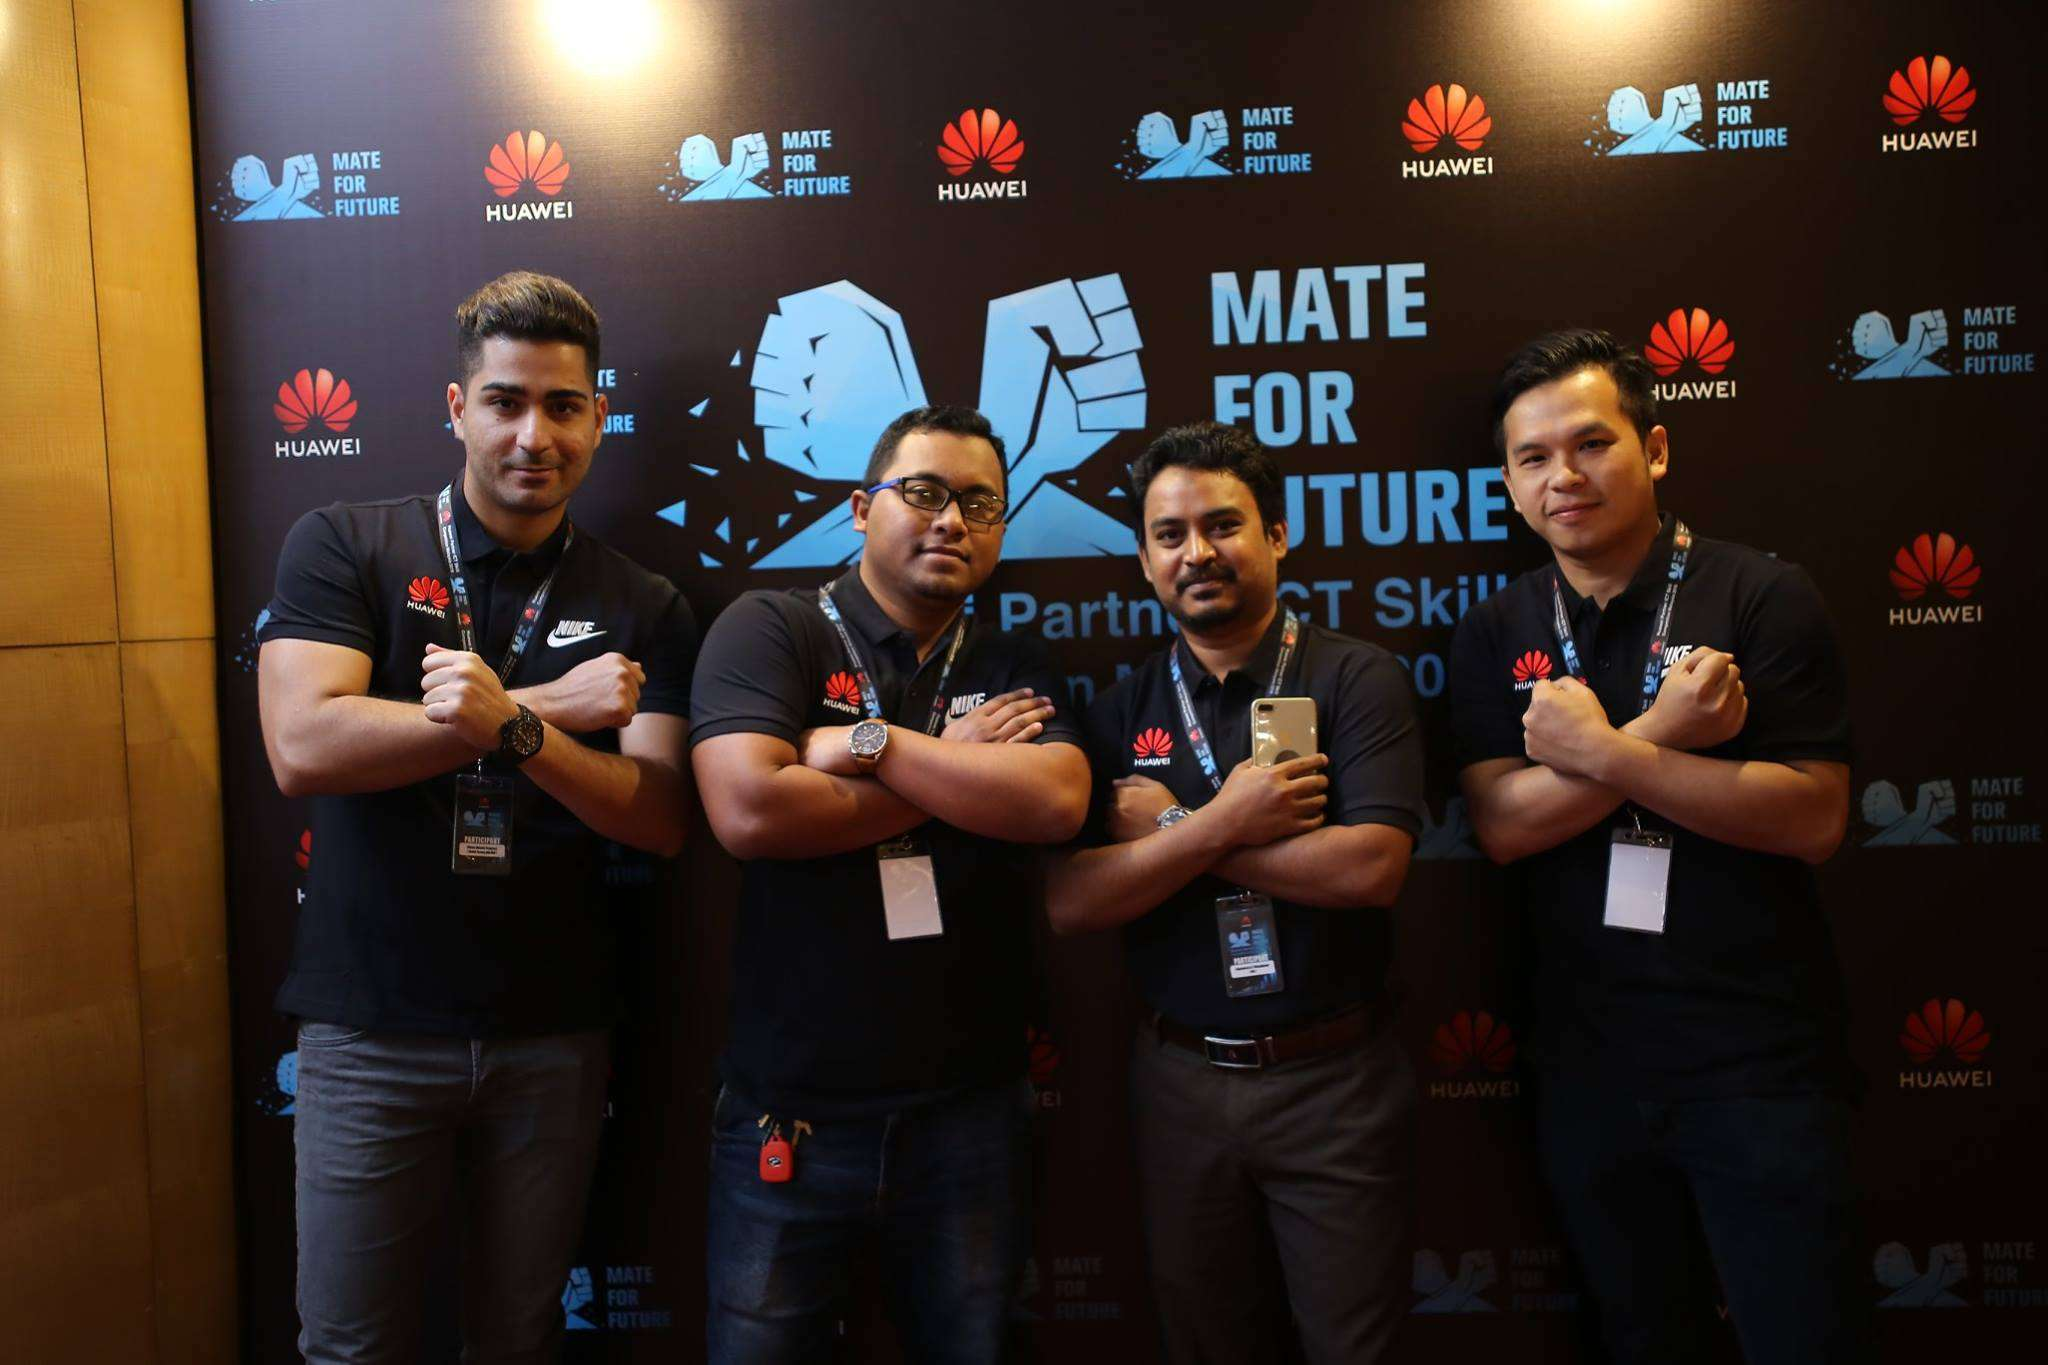 Huawei Partner ICT Skill Competition Malaysia 2018 – 9